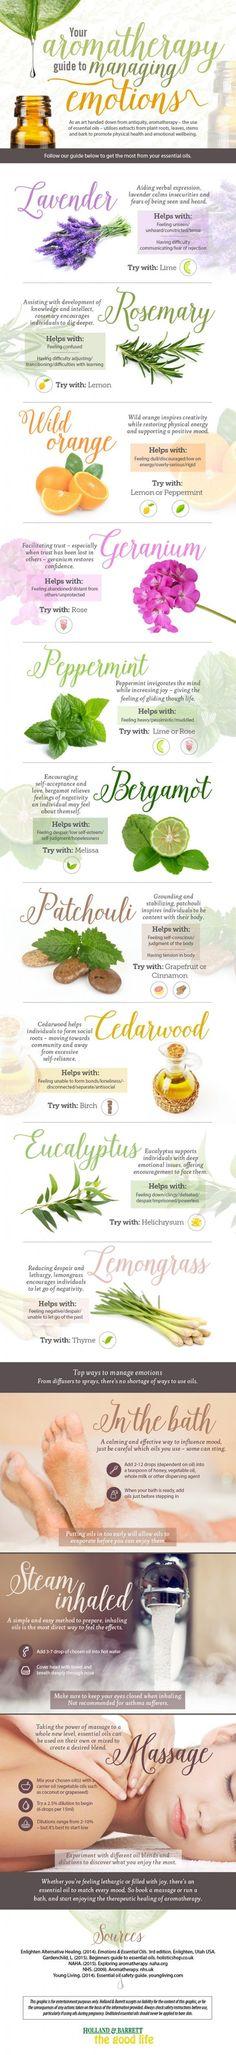 Renew your senses and disintegrate stress with the healing powers of Aromatherapy.